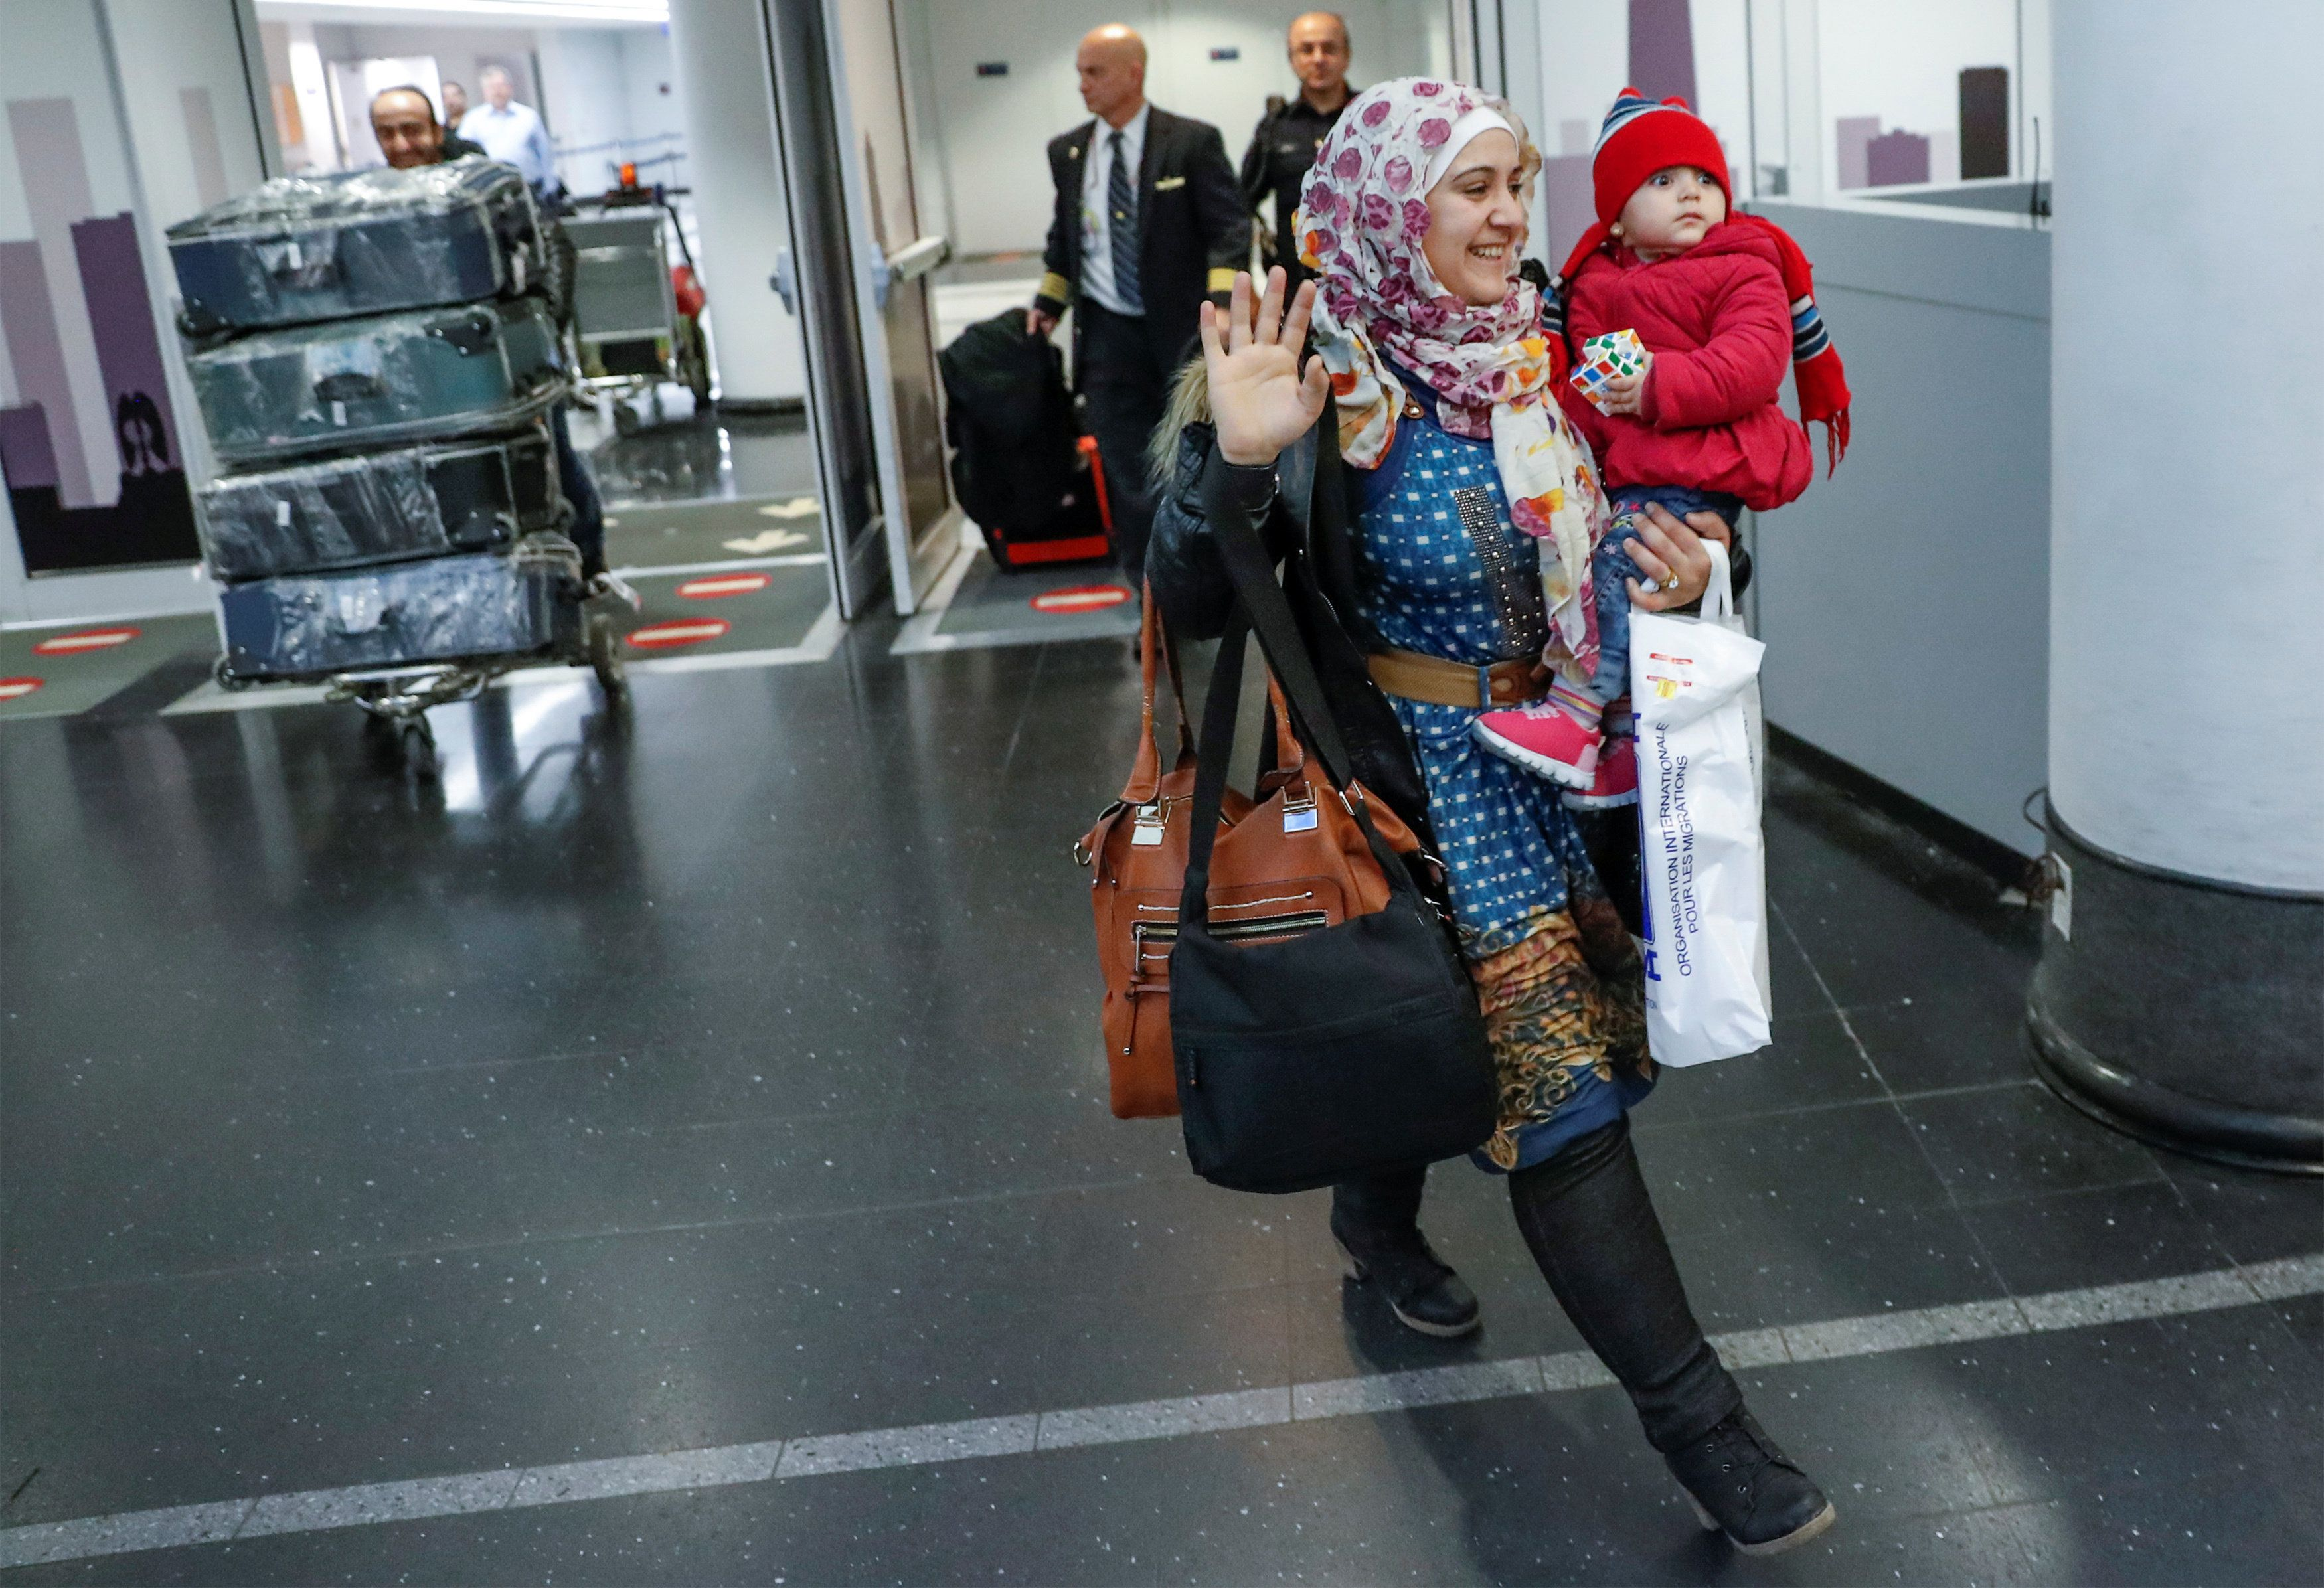 Syrian refugee Baraa Haj Khalaf, her daughter Shams, 1, and husband Abdulmajeed arrive at O'Hare International Airport in Chicago, Illinois, U.S. February 7, 2017.  REUTERS/Kamil Krzaczynski